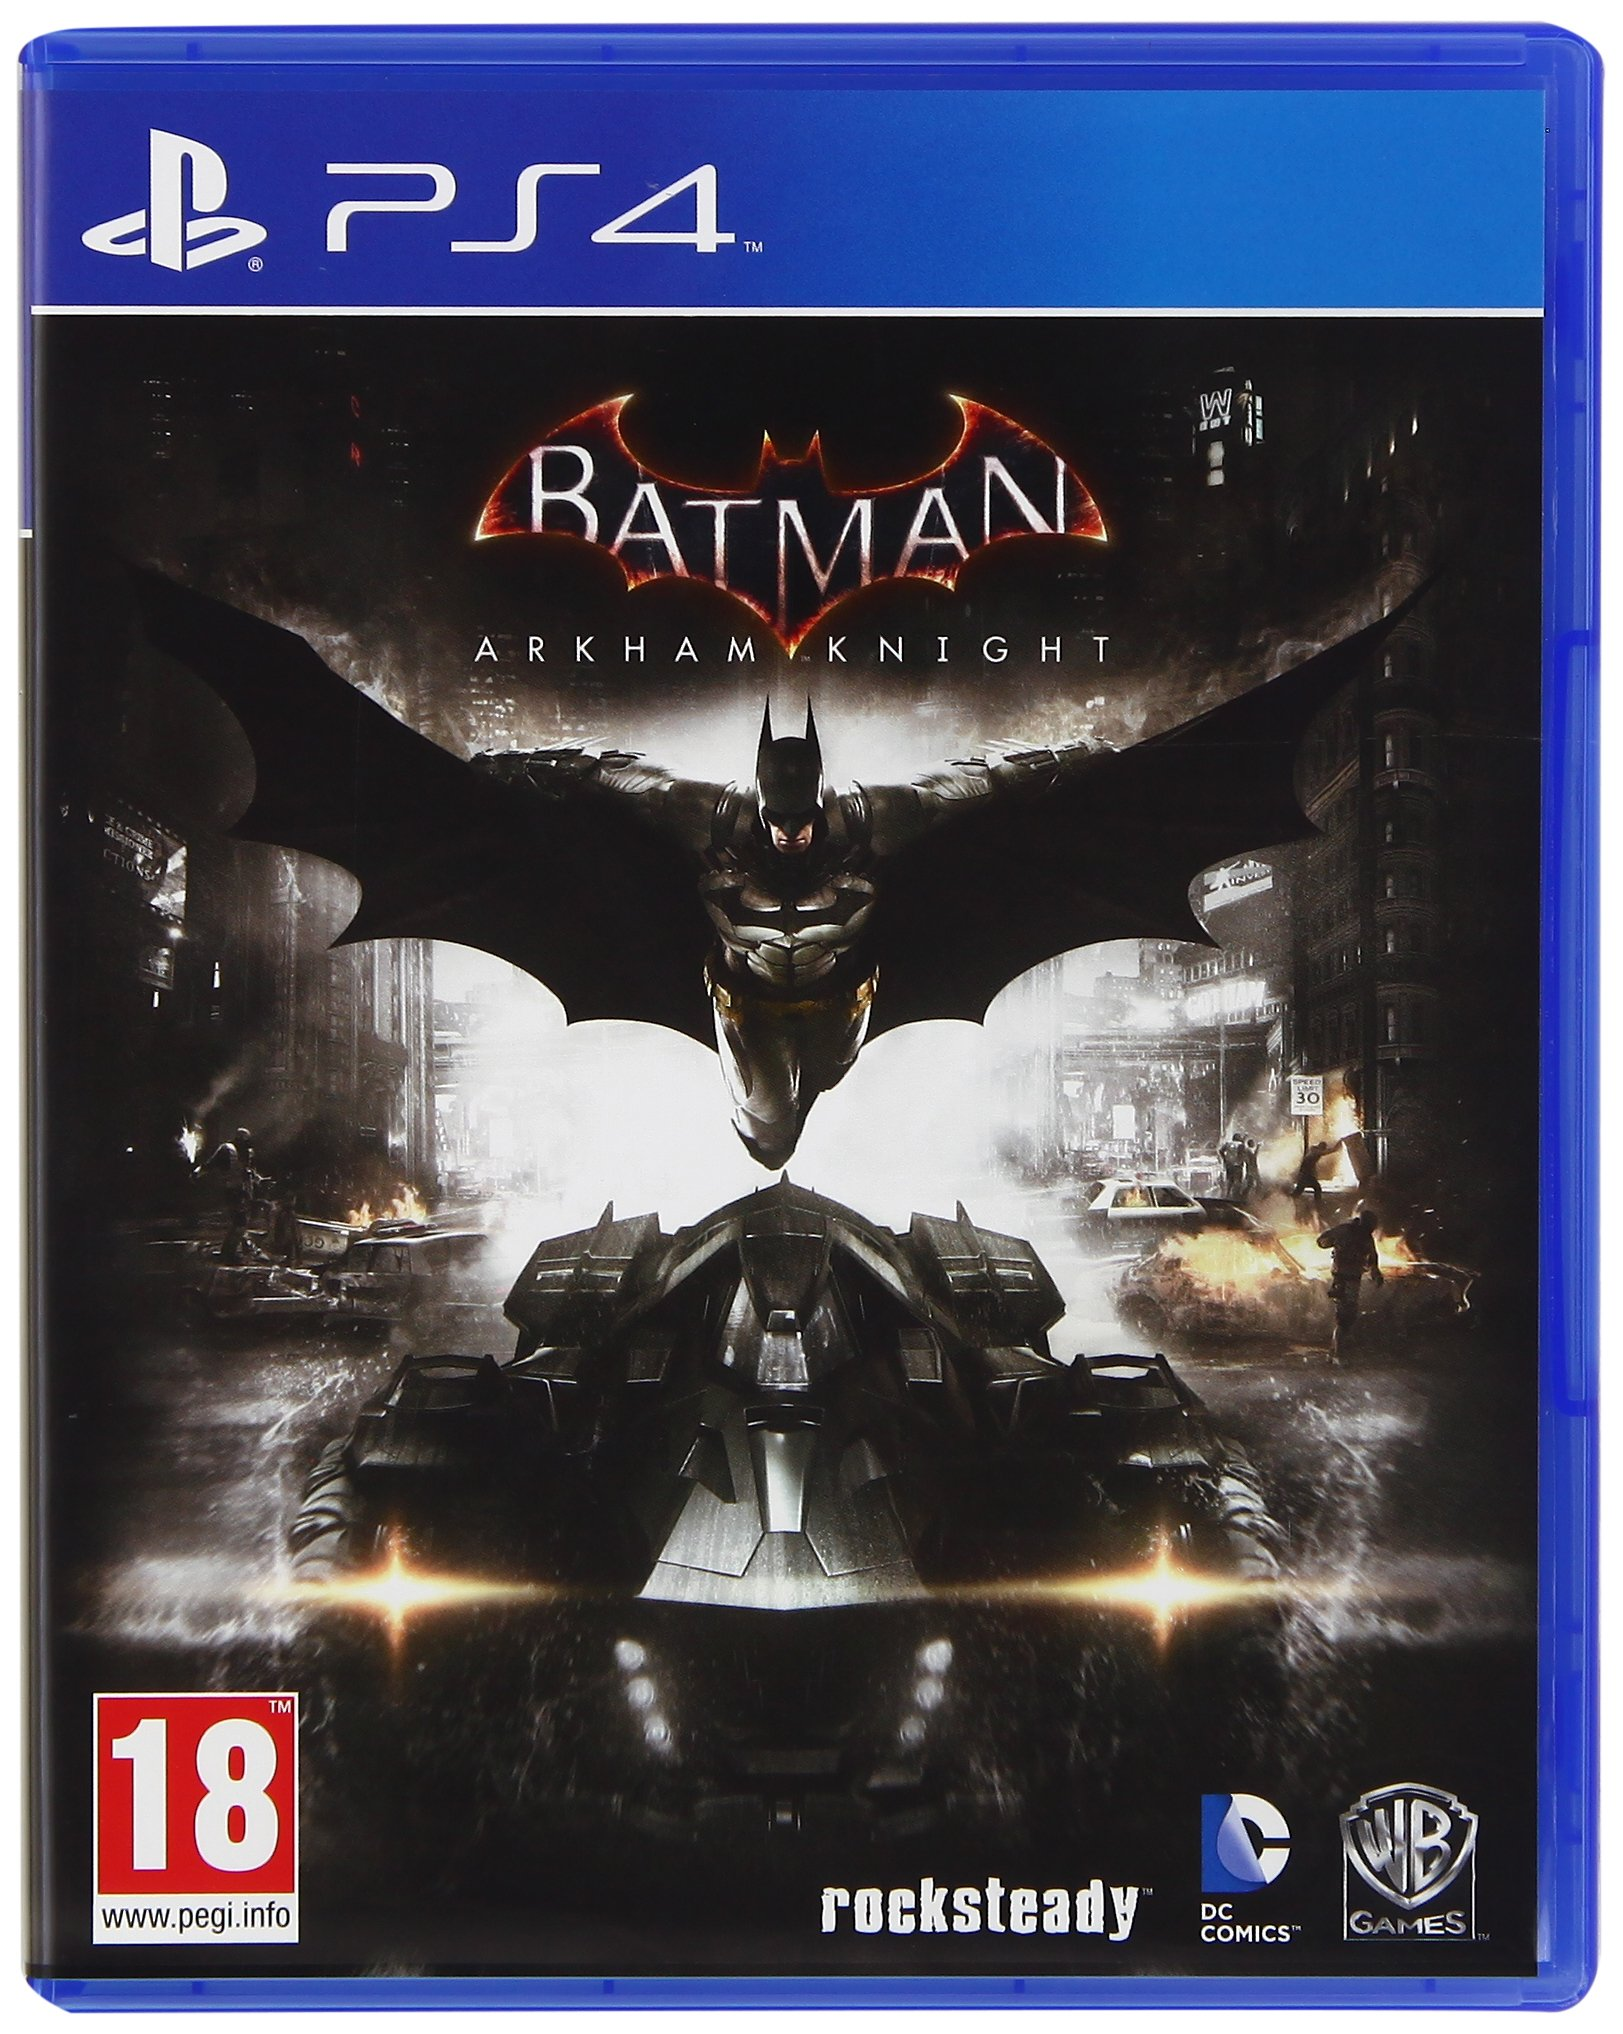 Batman Arkham Knight (PS4) product image